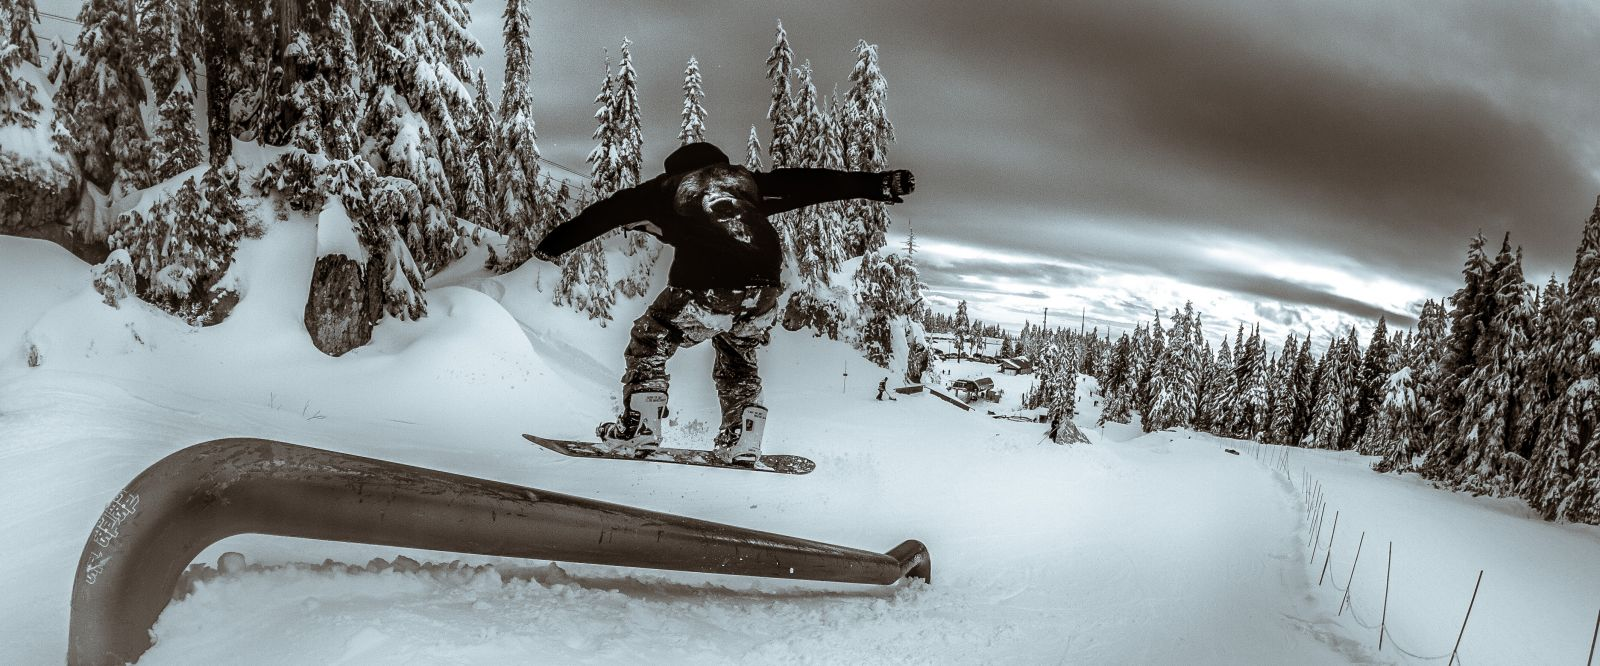 Snowboarder in the Rockstar Pit at Mt Seymour in Vancouver